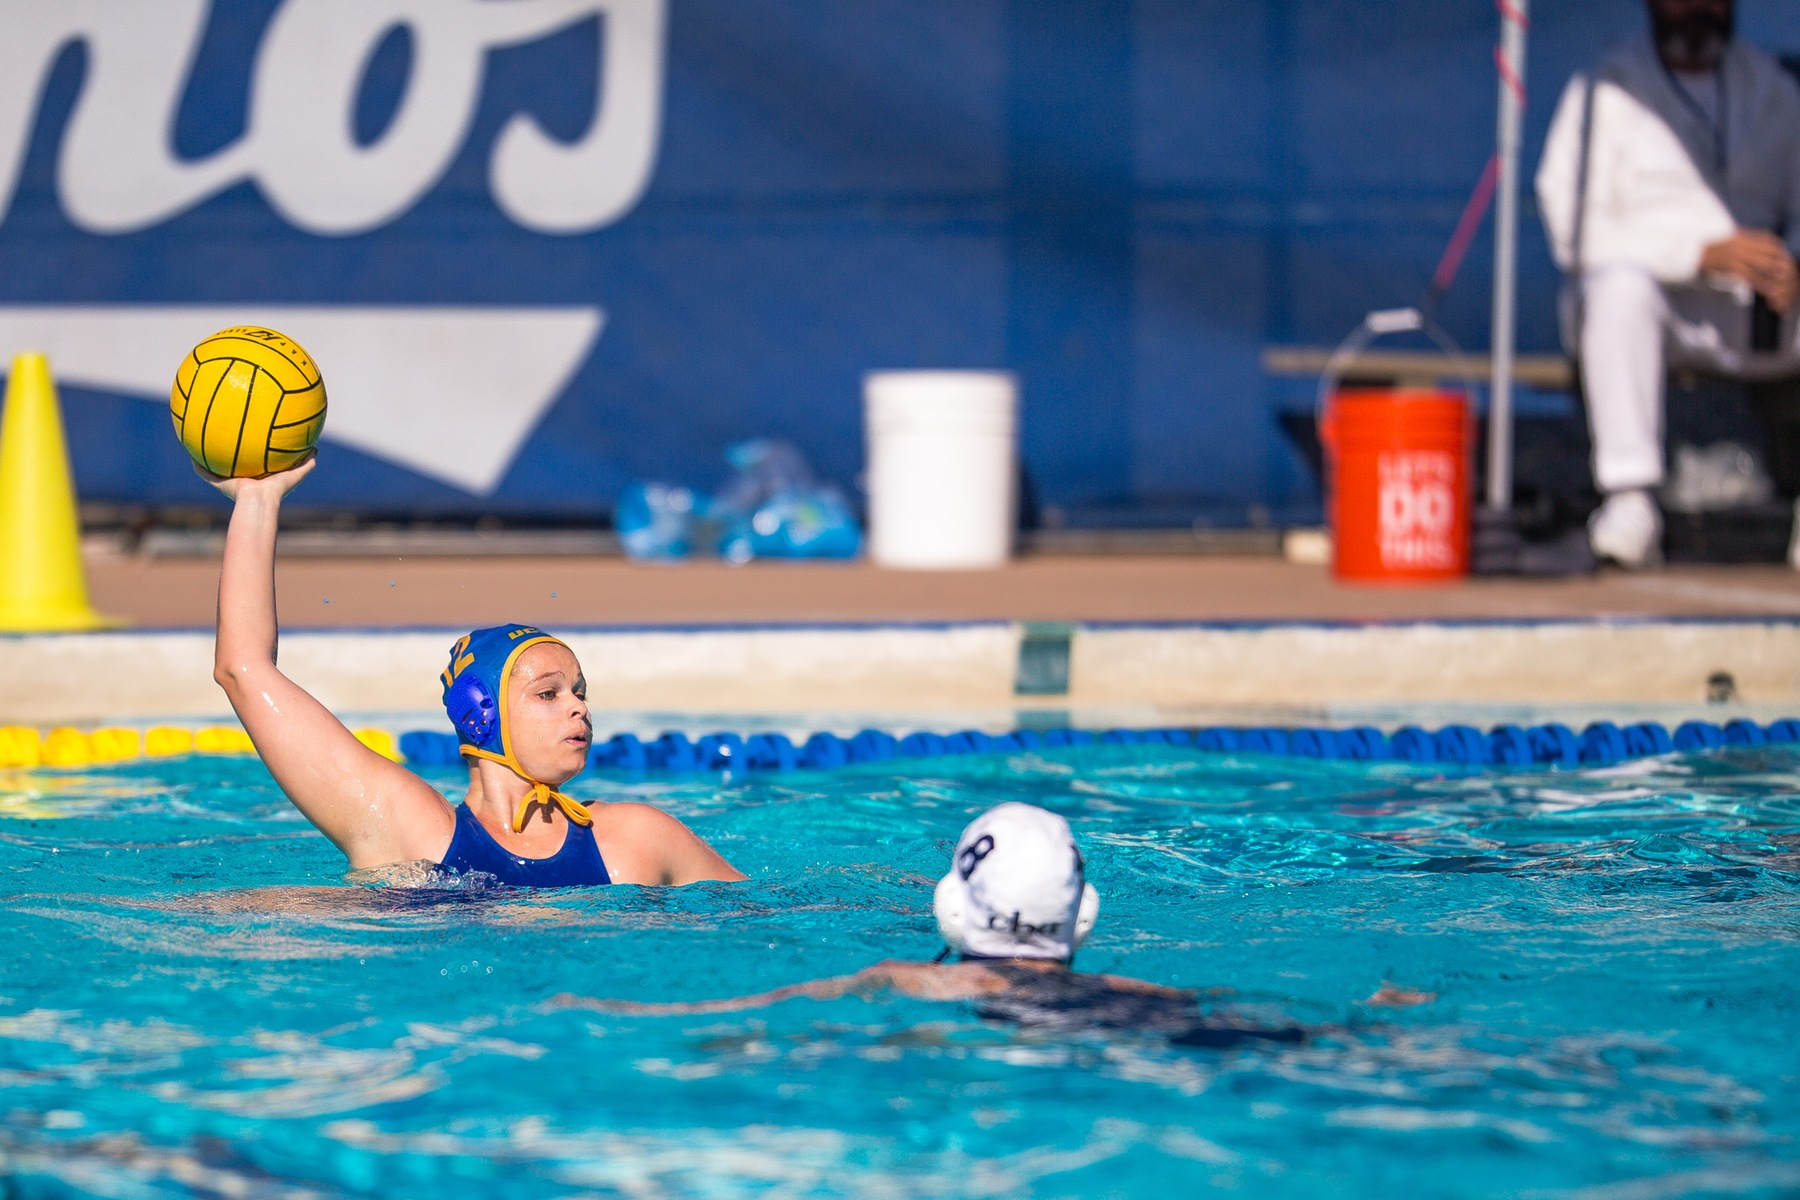 Gauchos Stifle No. 14 Wagner in 9-4 Win, Fall to No. 3 UCLA 6-4